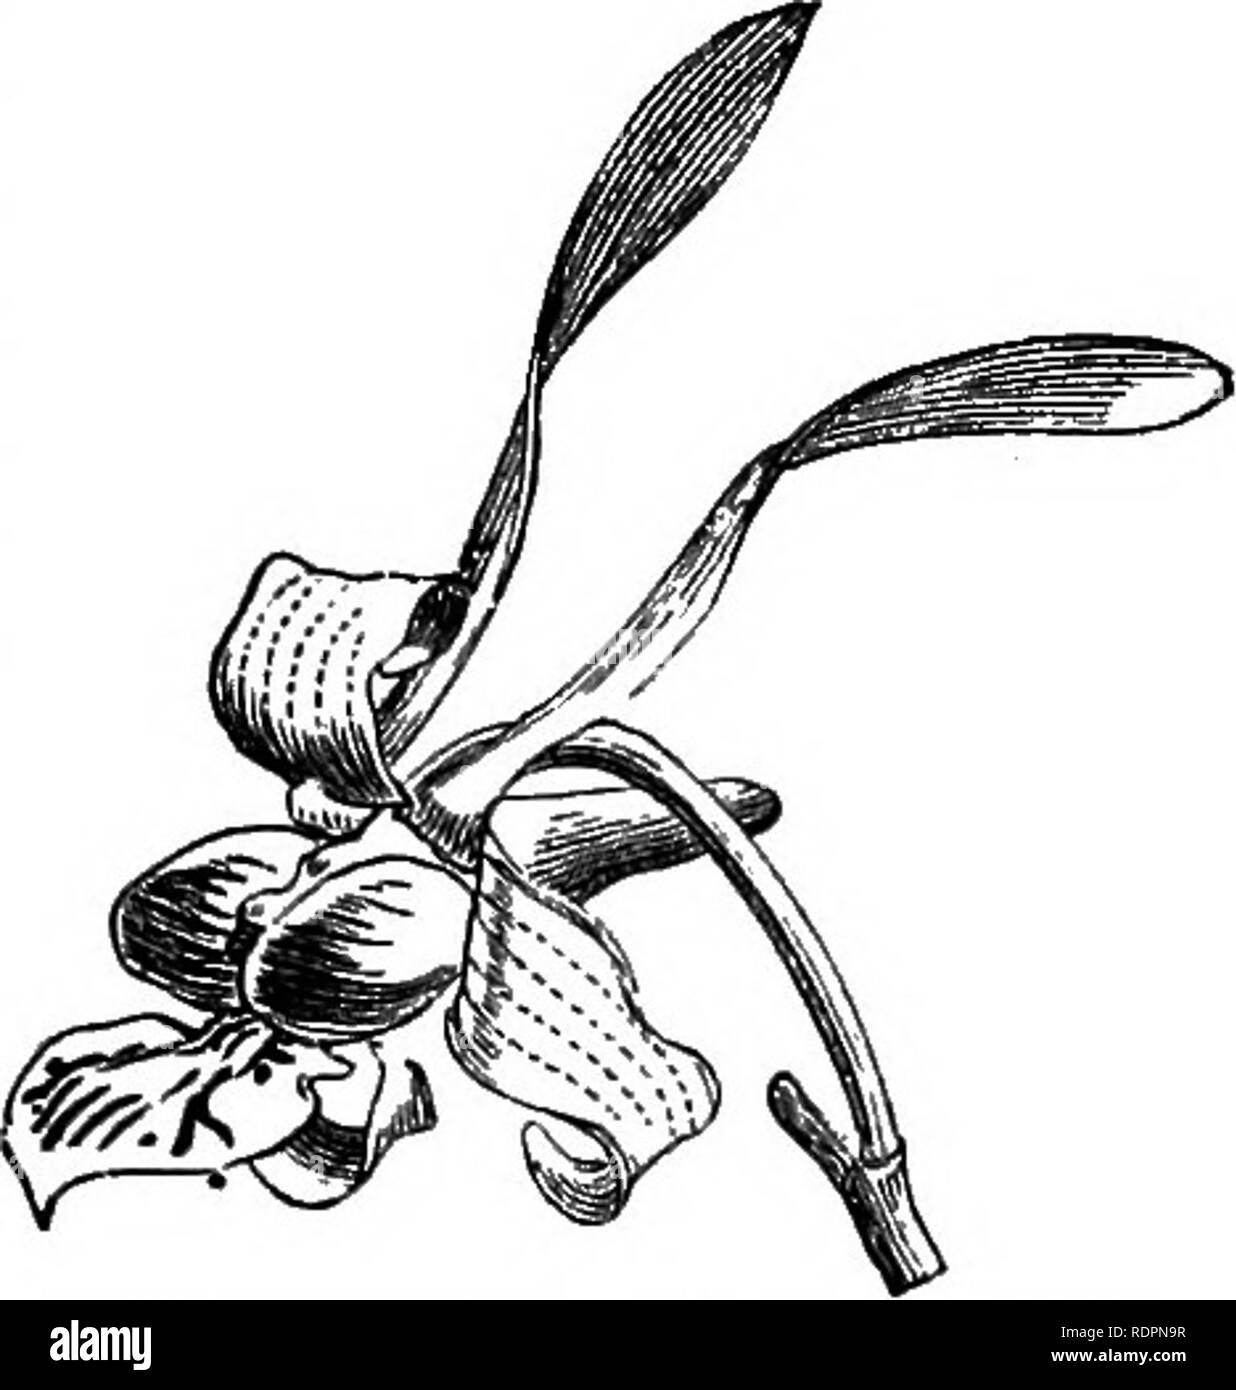 . The orchid-grower's manual, containing descriptions of the best species and varieties of orchidaceous plants in cultivation ... Orchids. DENDROWUM. 333 D. CRYSTALLINUM, Edih. /.âA distinct and beautiful species, with terete somewhat slender striate pendulous stems, which are destitute of the knotted joints so conspicuous in some of the allied plants. The distichous linear- lanceolate acuminate leaves are produced on the young stems, and fall away before the flowers are developed. The flowers are of moderate size, and freely produced; the sepals and petals white tipped with magenta; the lip o - Stock Image